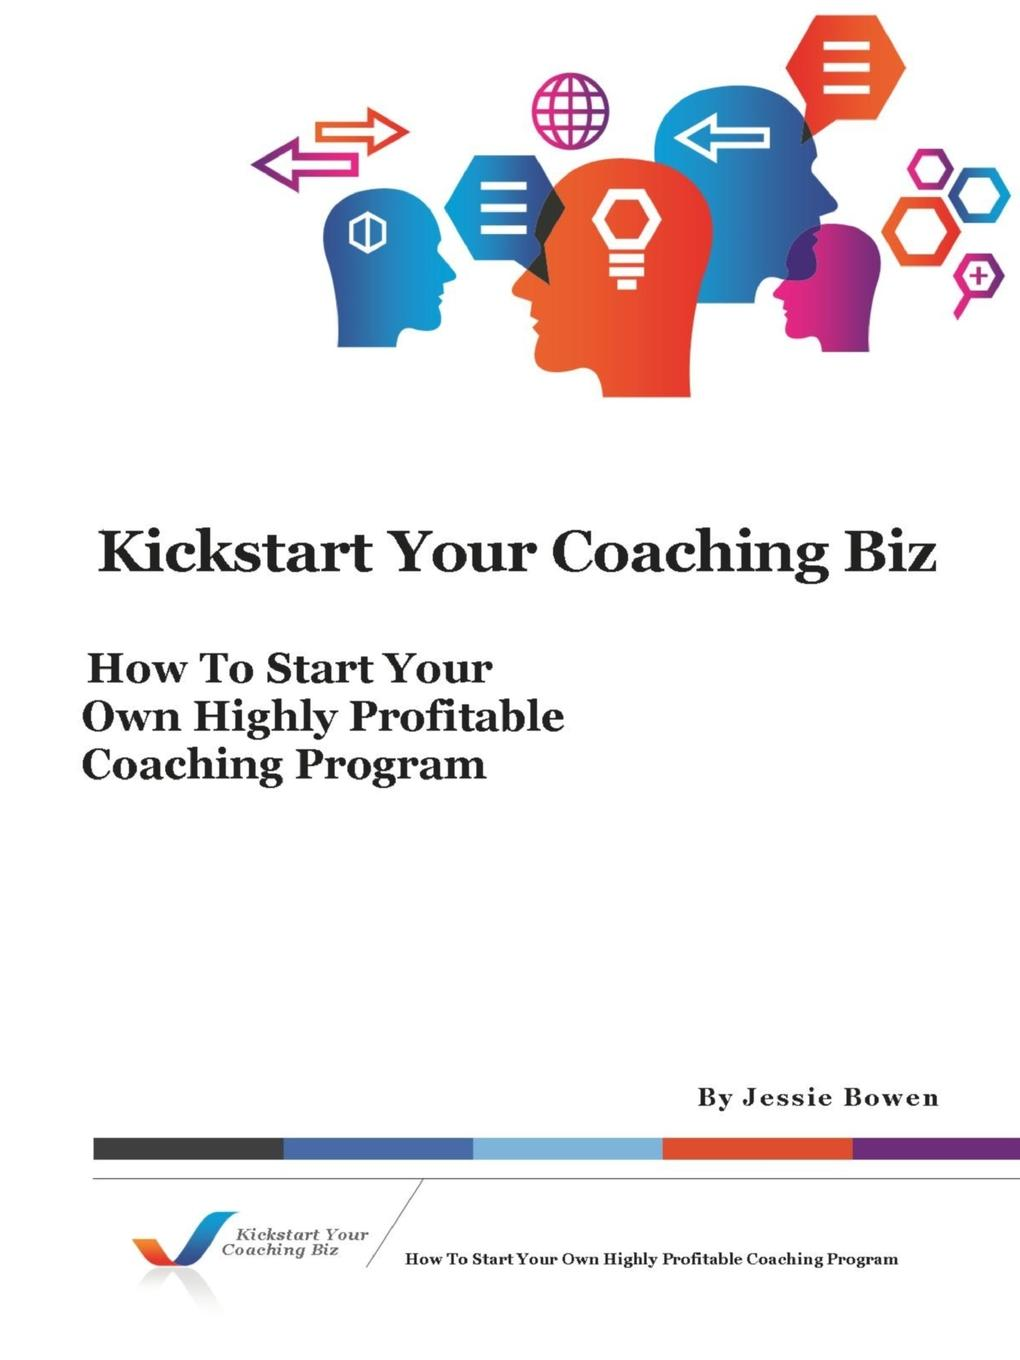 Jessie Bowen Kickstart Your Coaching Biz david taylor the naked coach business coaching made simple